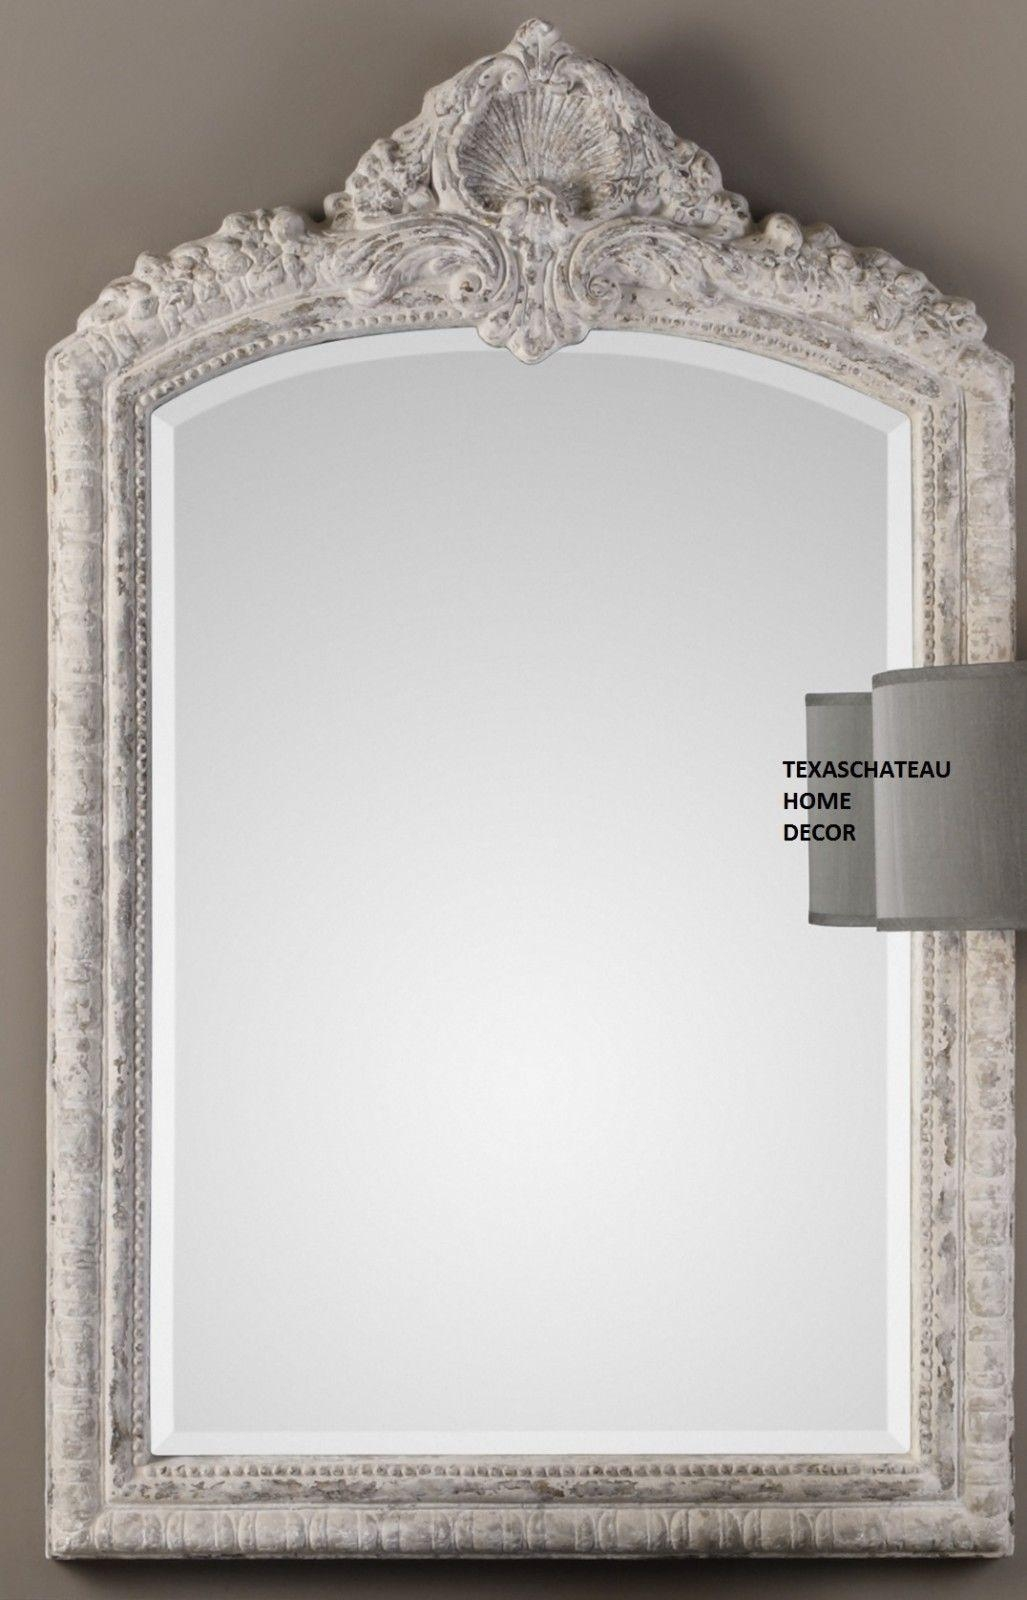 Ornate Antique Cream Arched Wall Mirror French Vanity Bath Regarding Antique Cream Mirror (Image 15 of 20)